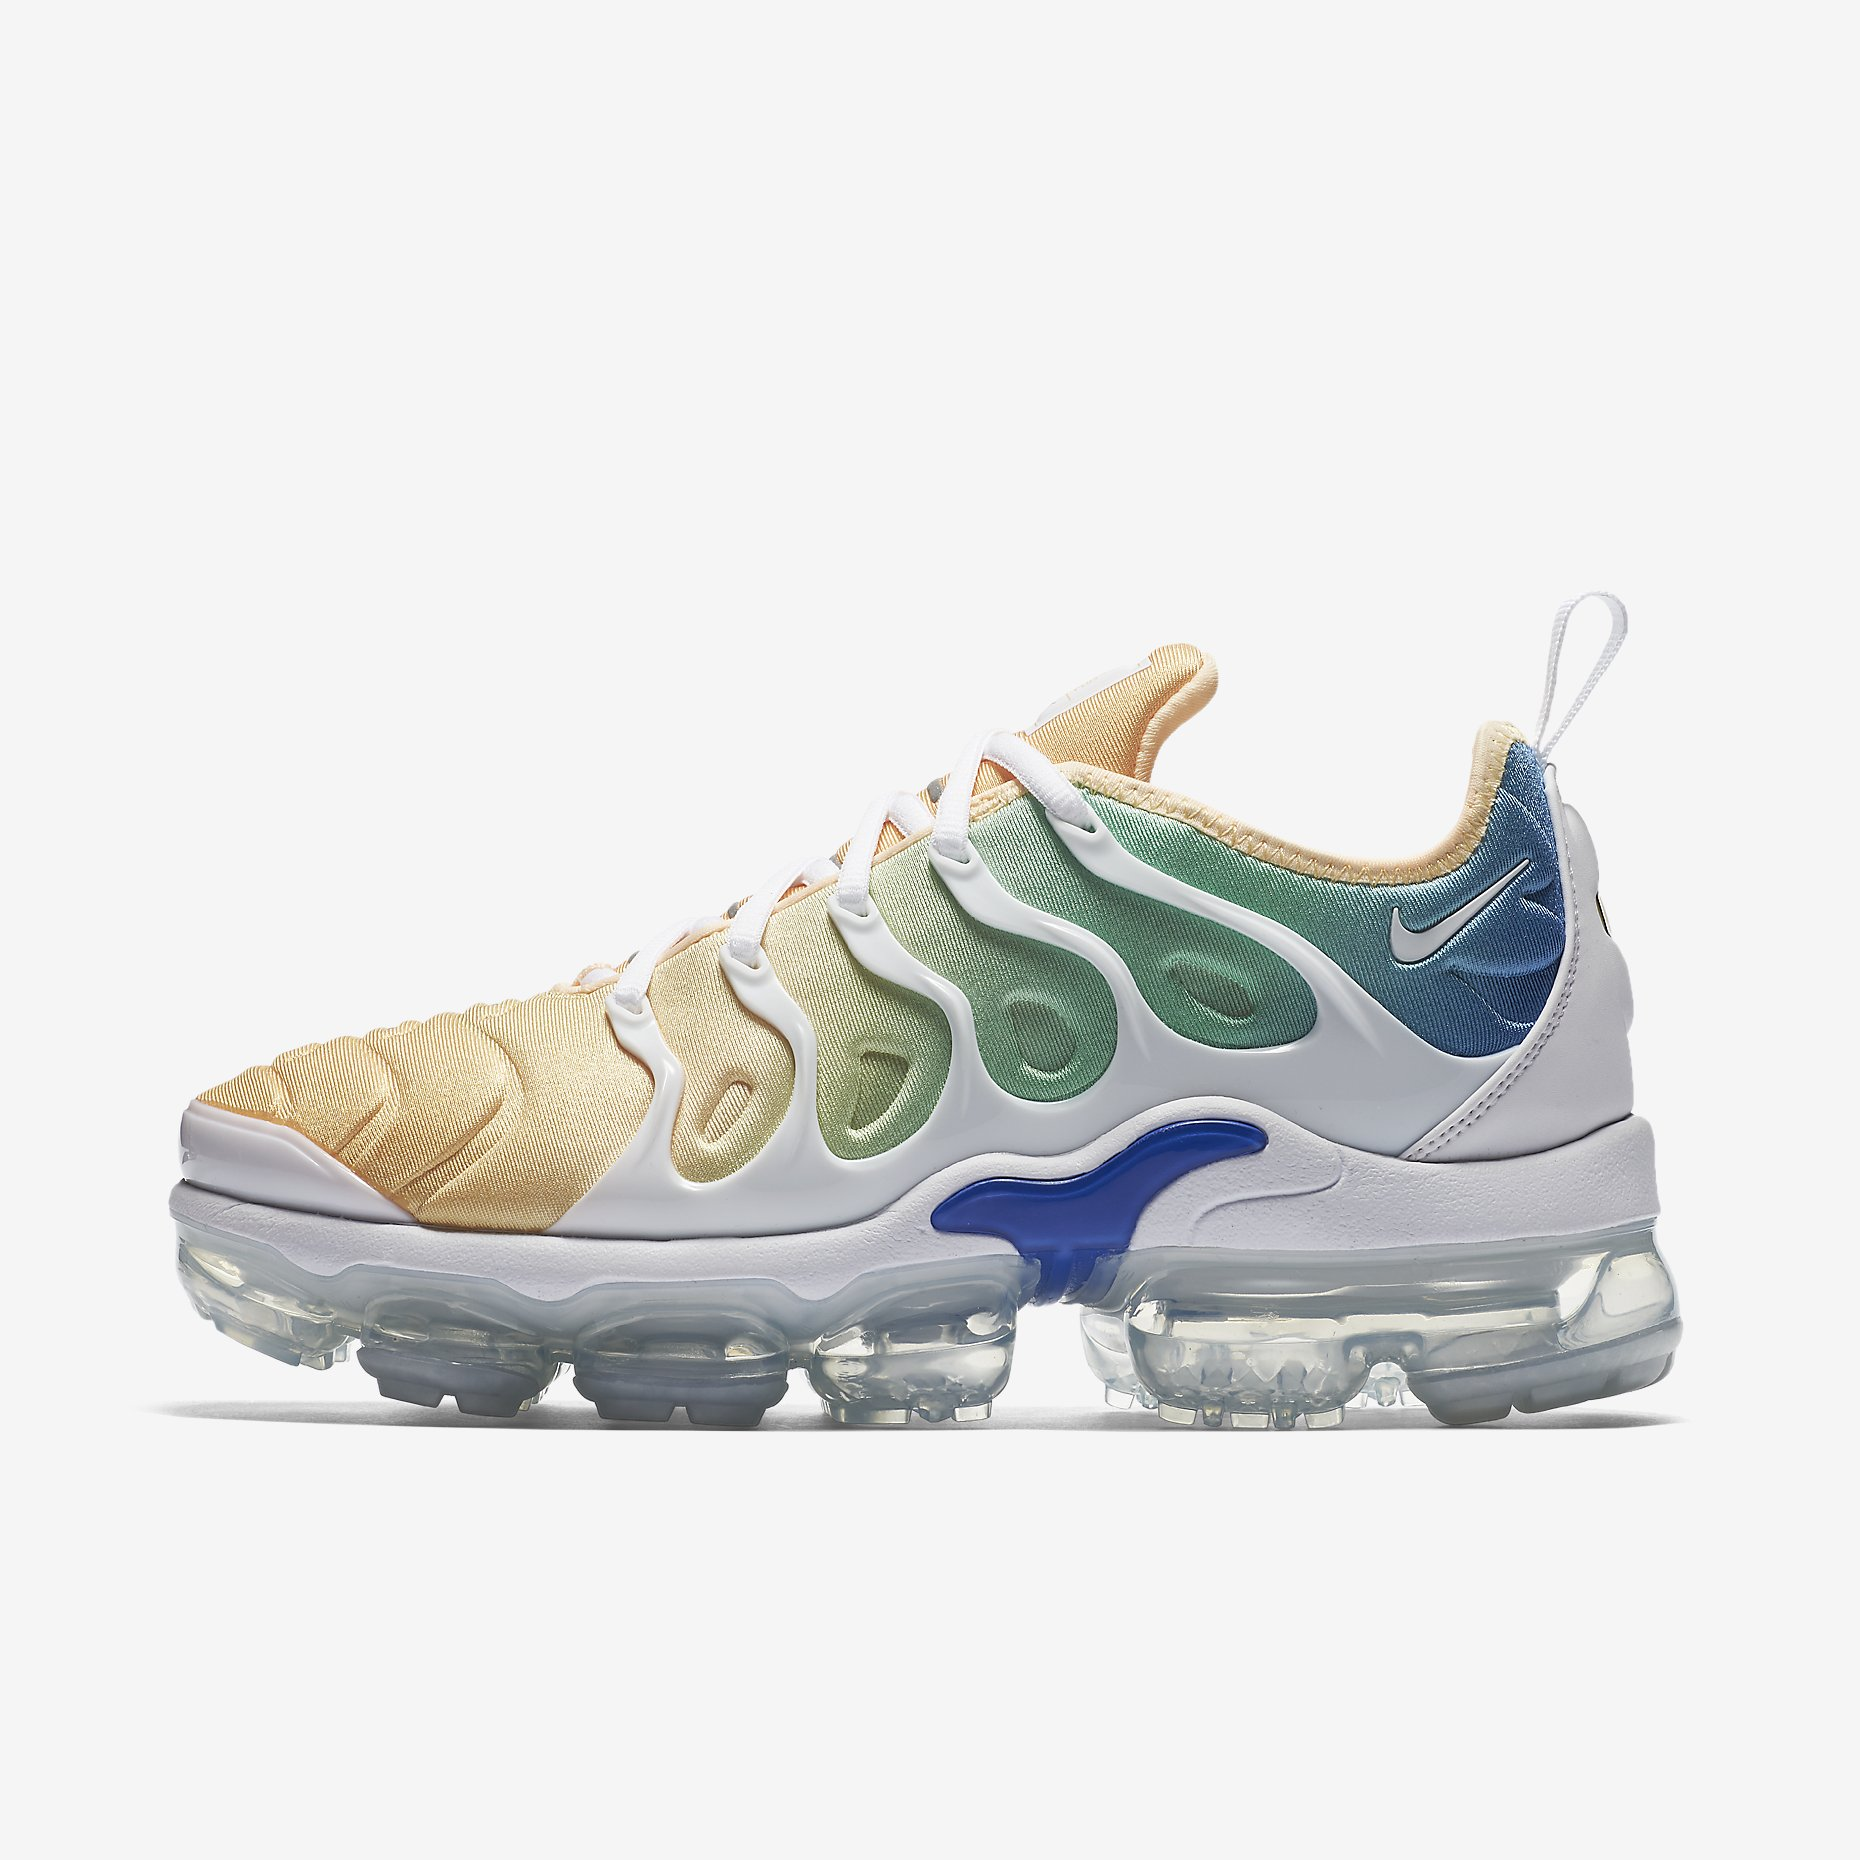 finest selection 1313b aa90d Details about NIKE WMNS AIR VAPORMAX PLUS AO4550-100 WHITE LIGHT MENTA  TANGERINE TINT